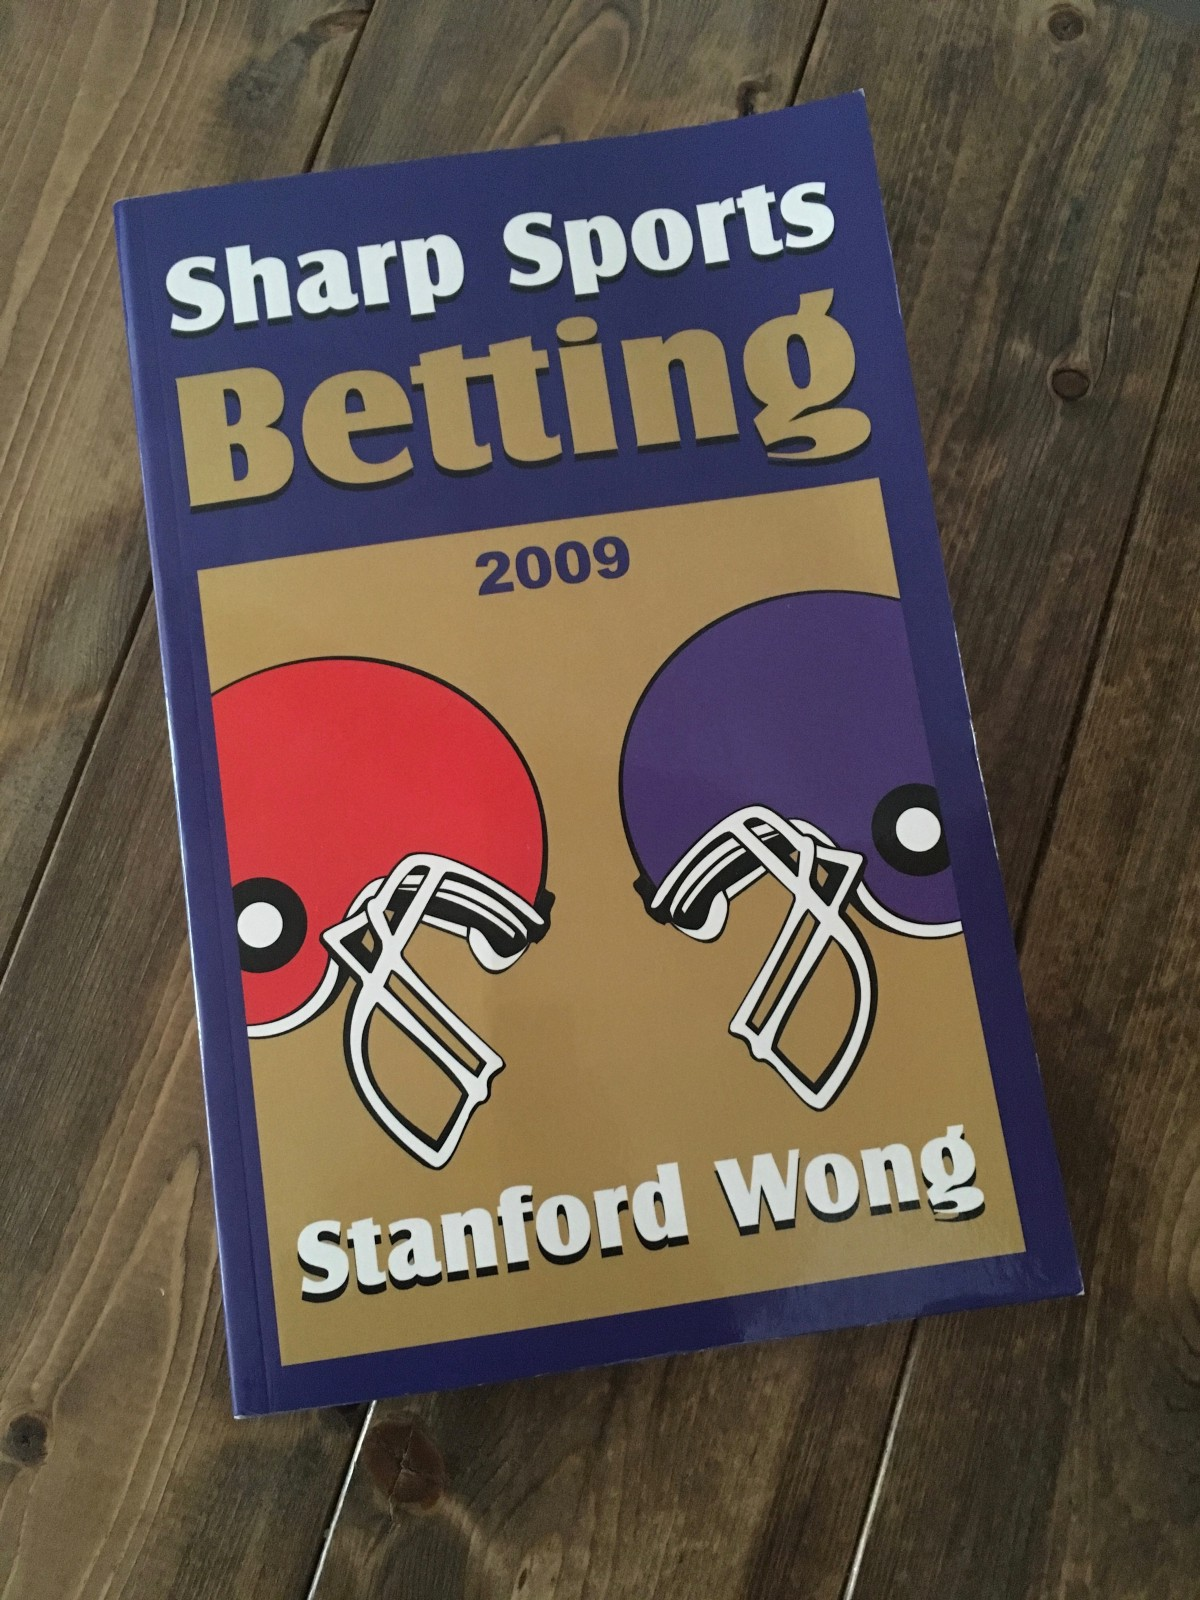 sharp sports betting by stanford wong